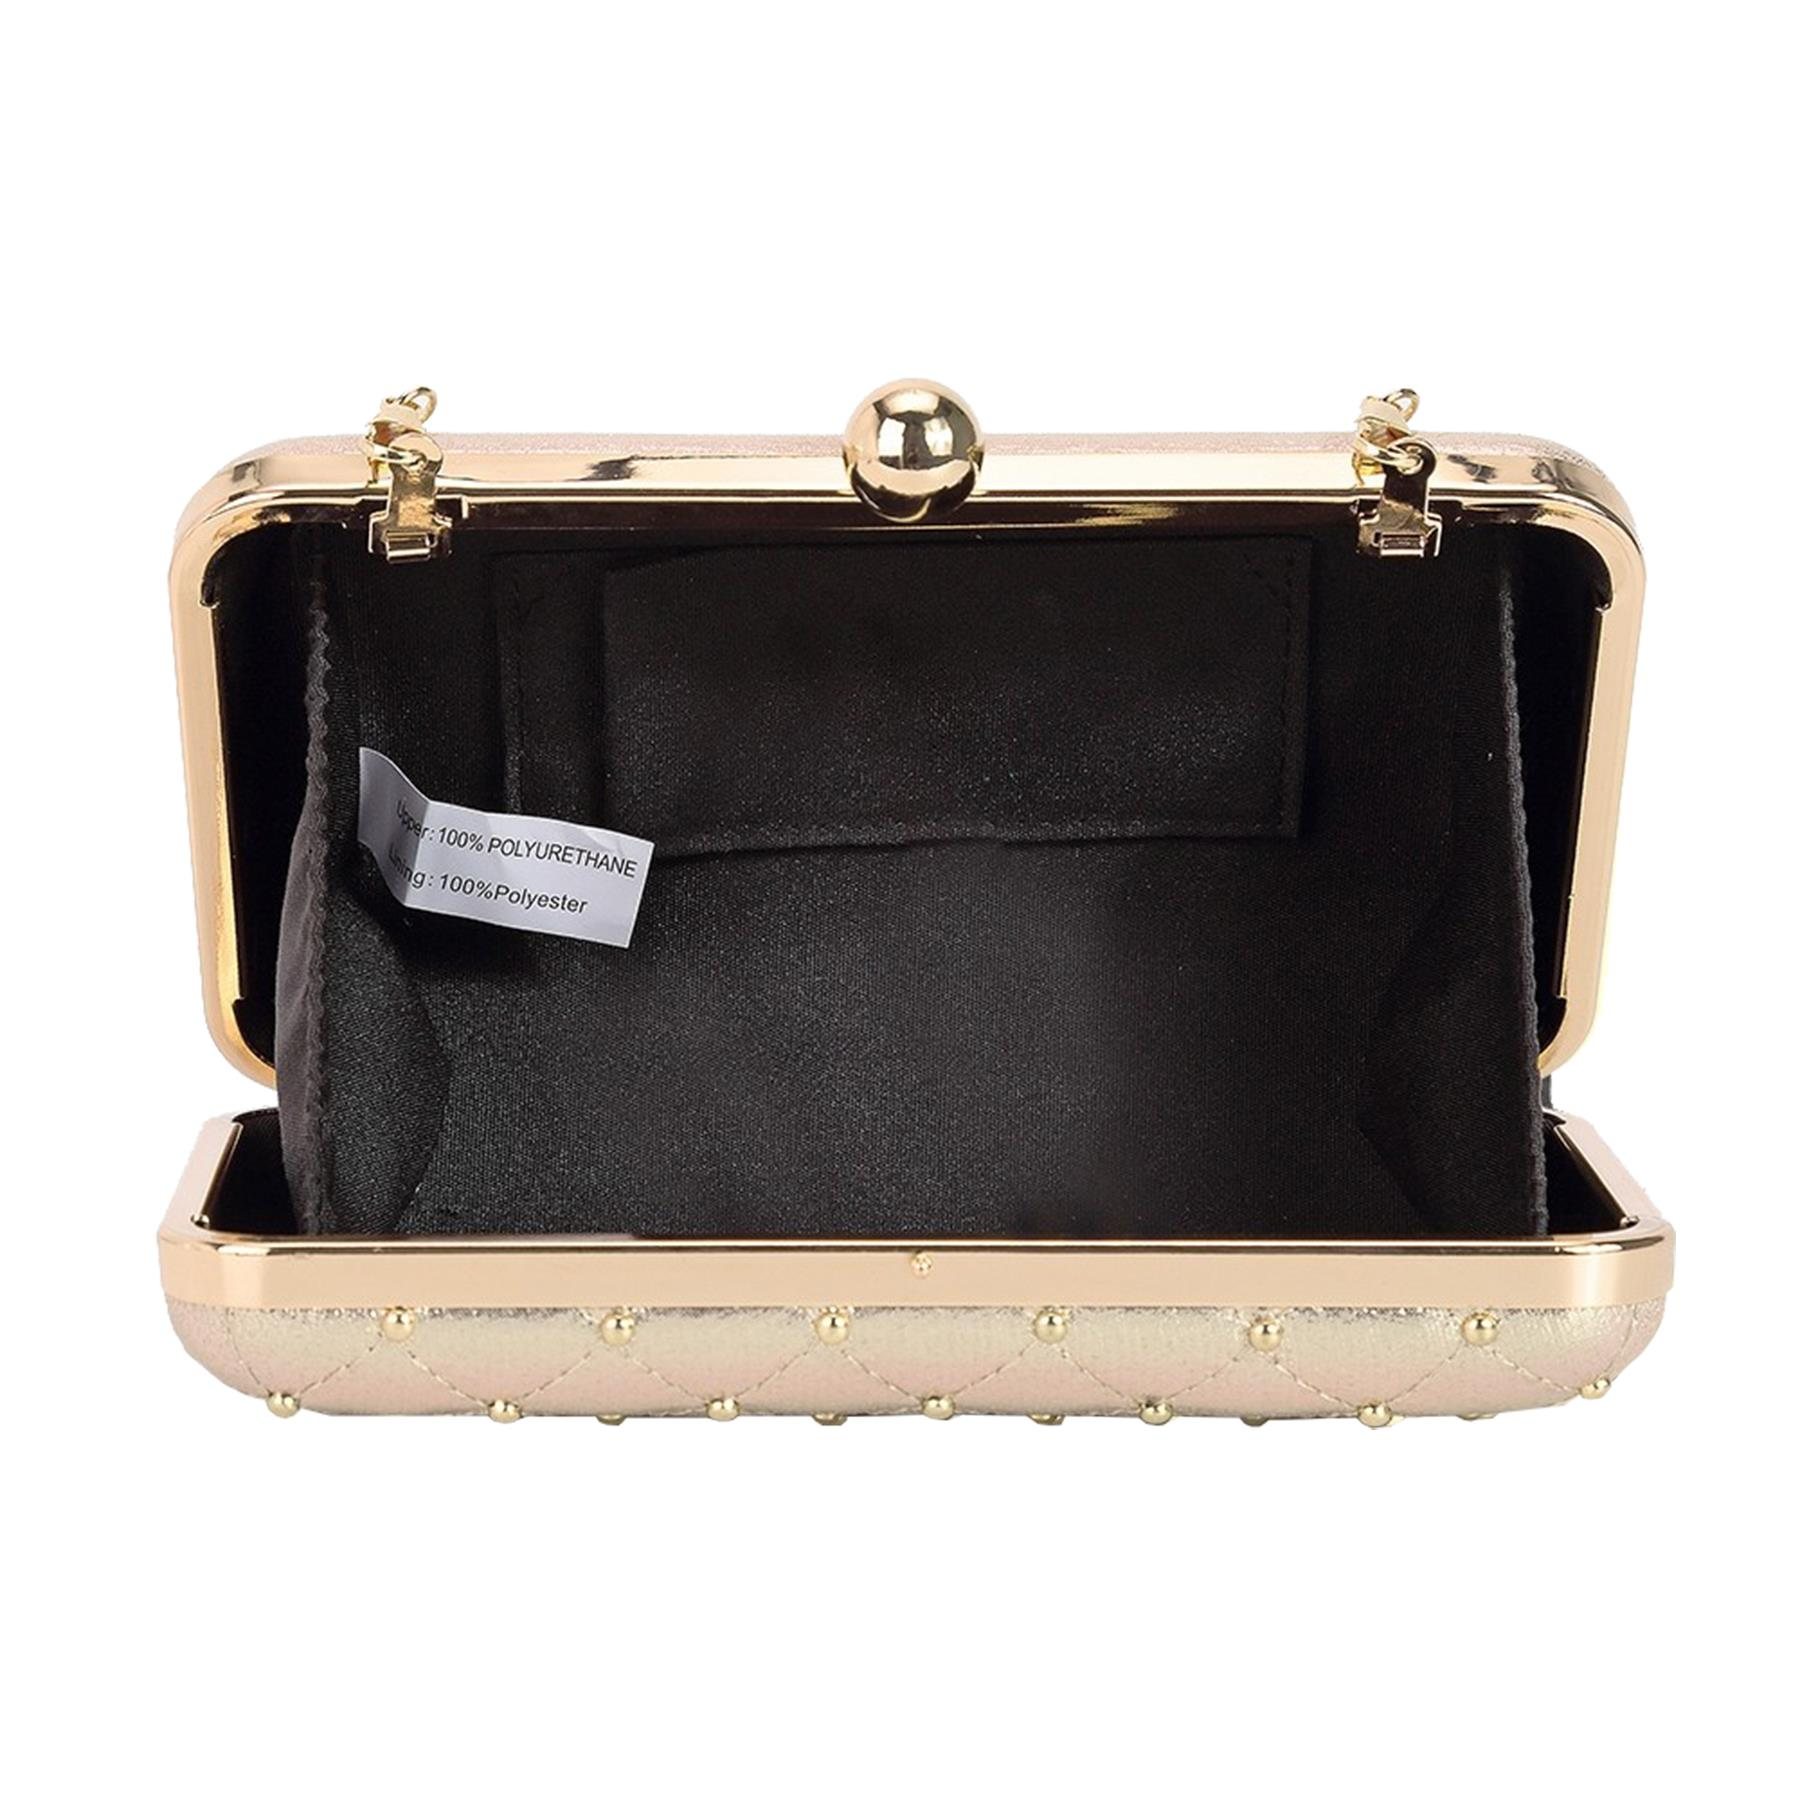 New-Women-s-Quilted-Studded-Faux-Leather-Party-Bridal-Prom-Box-Clutch-Bag thumbnail 7